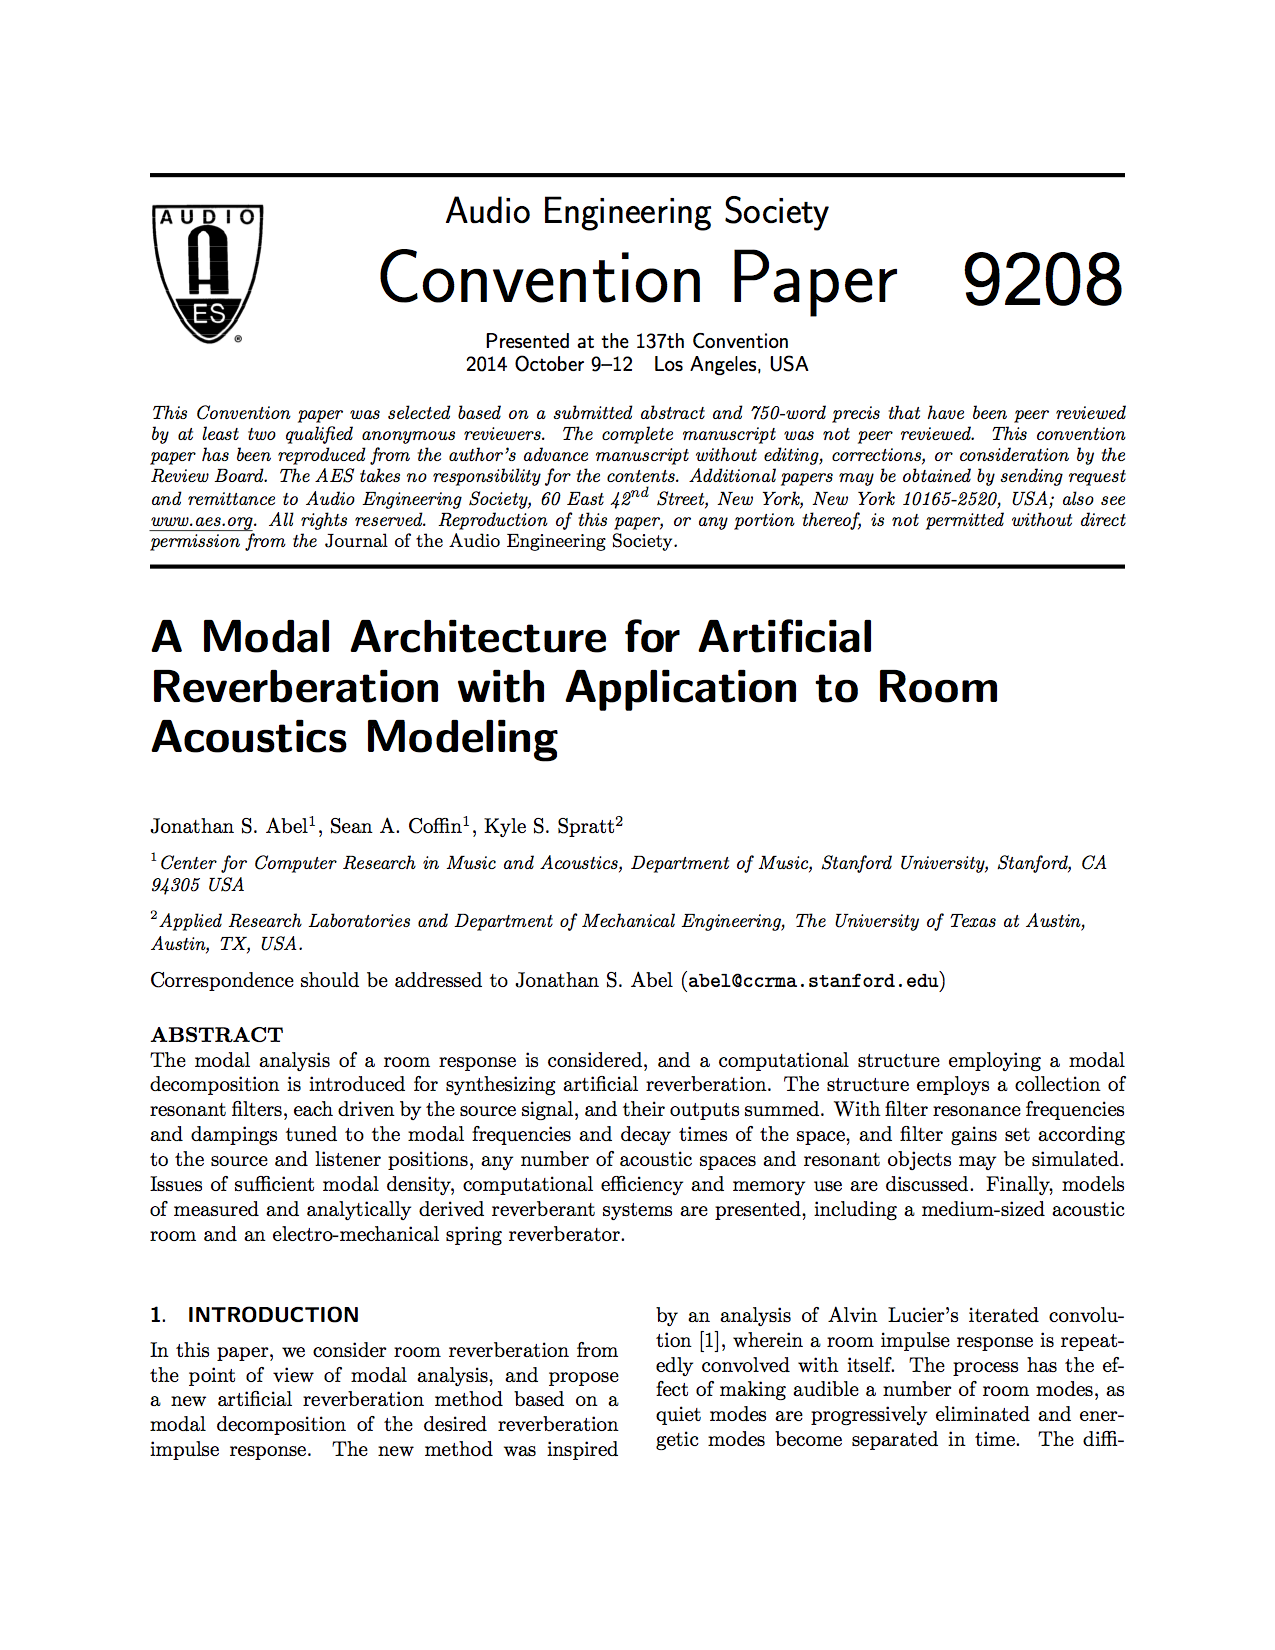 Aes E Library A Modal Architecture For Artificial Reverberation The Wiring This Is Pretty Straightforward Some Of Items Xm With Application To Room Acoustics Modeling